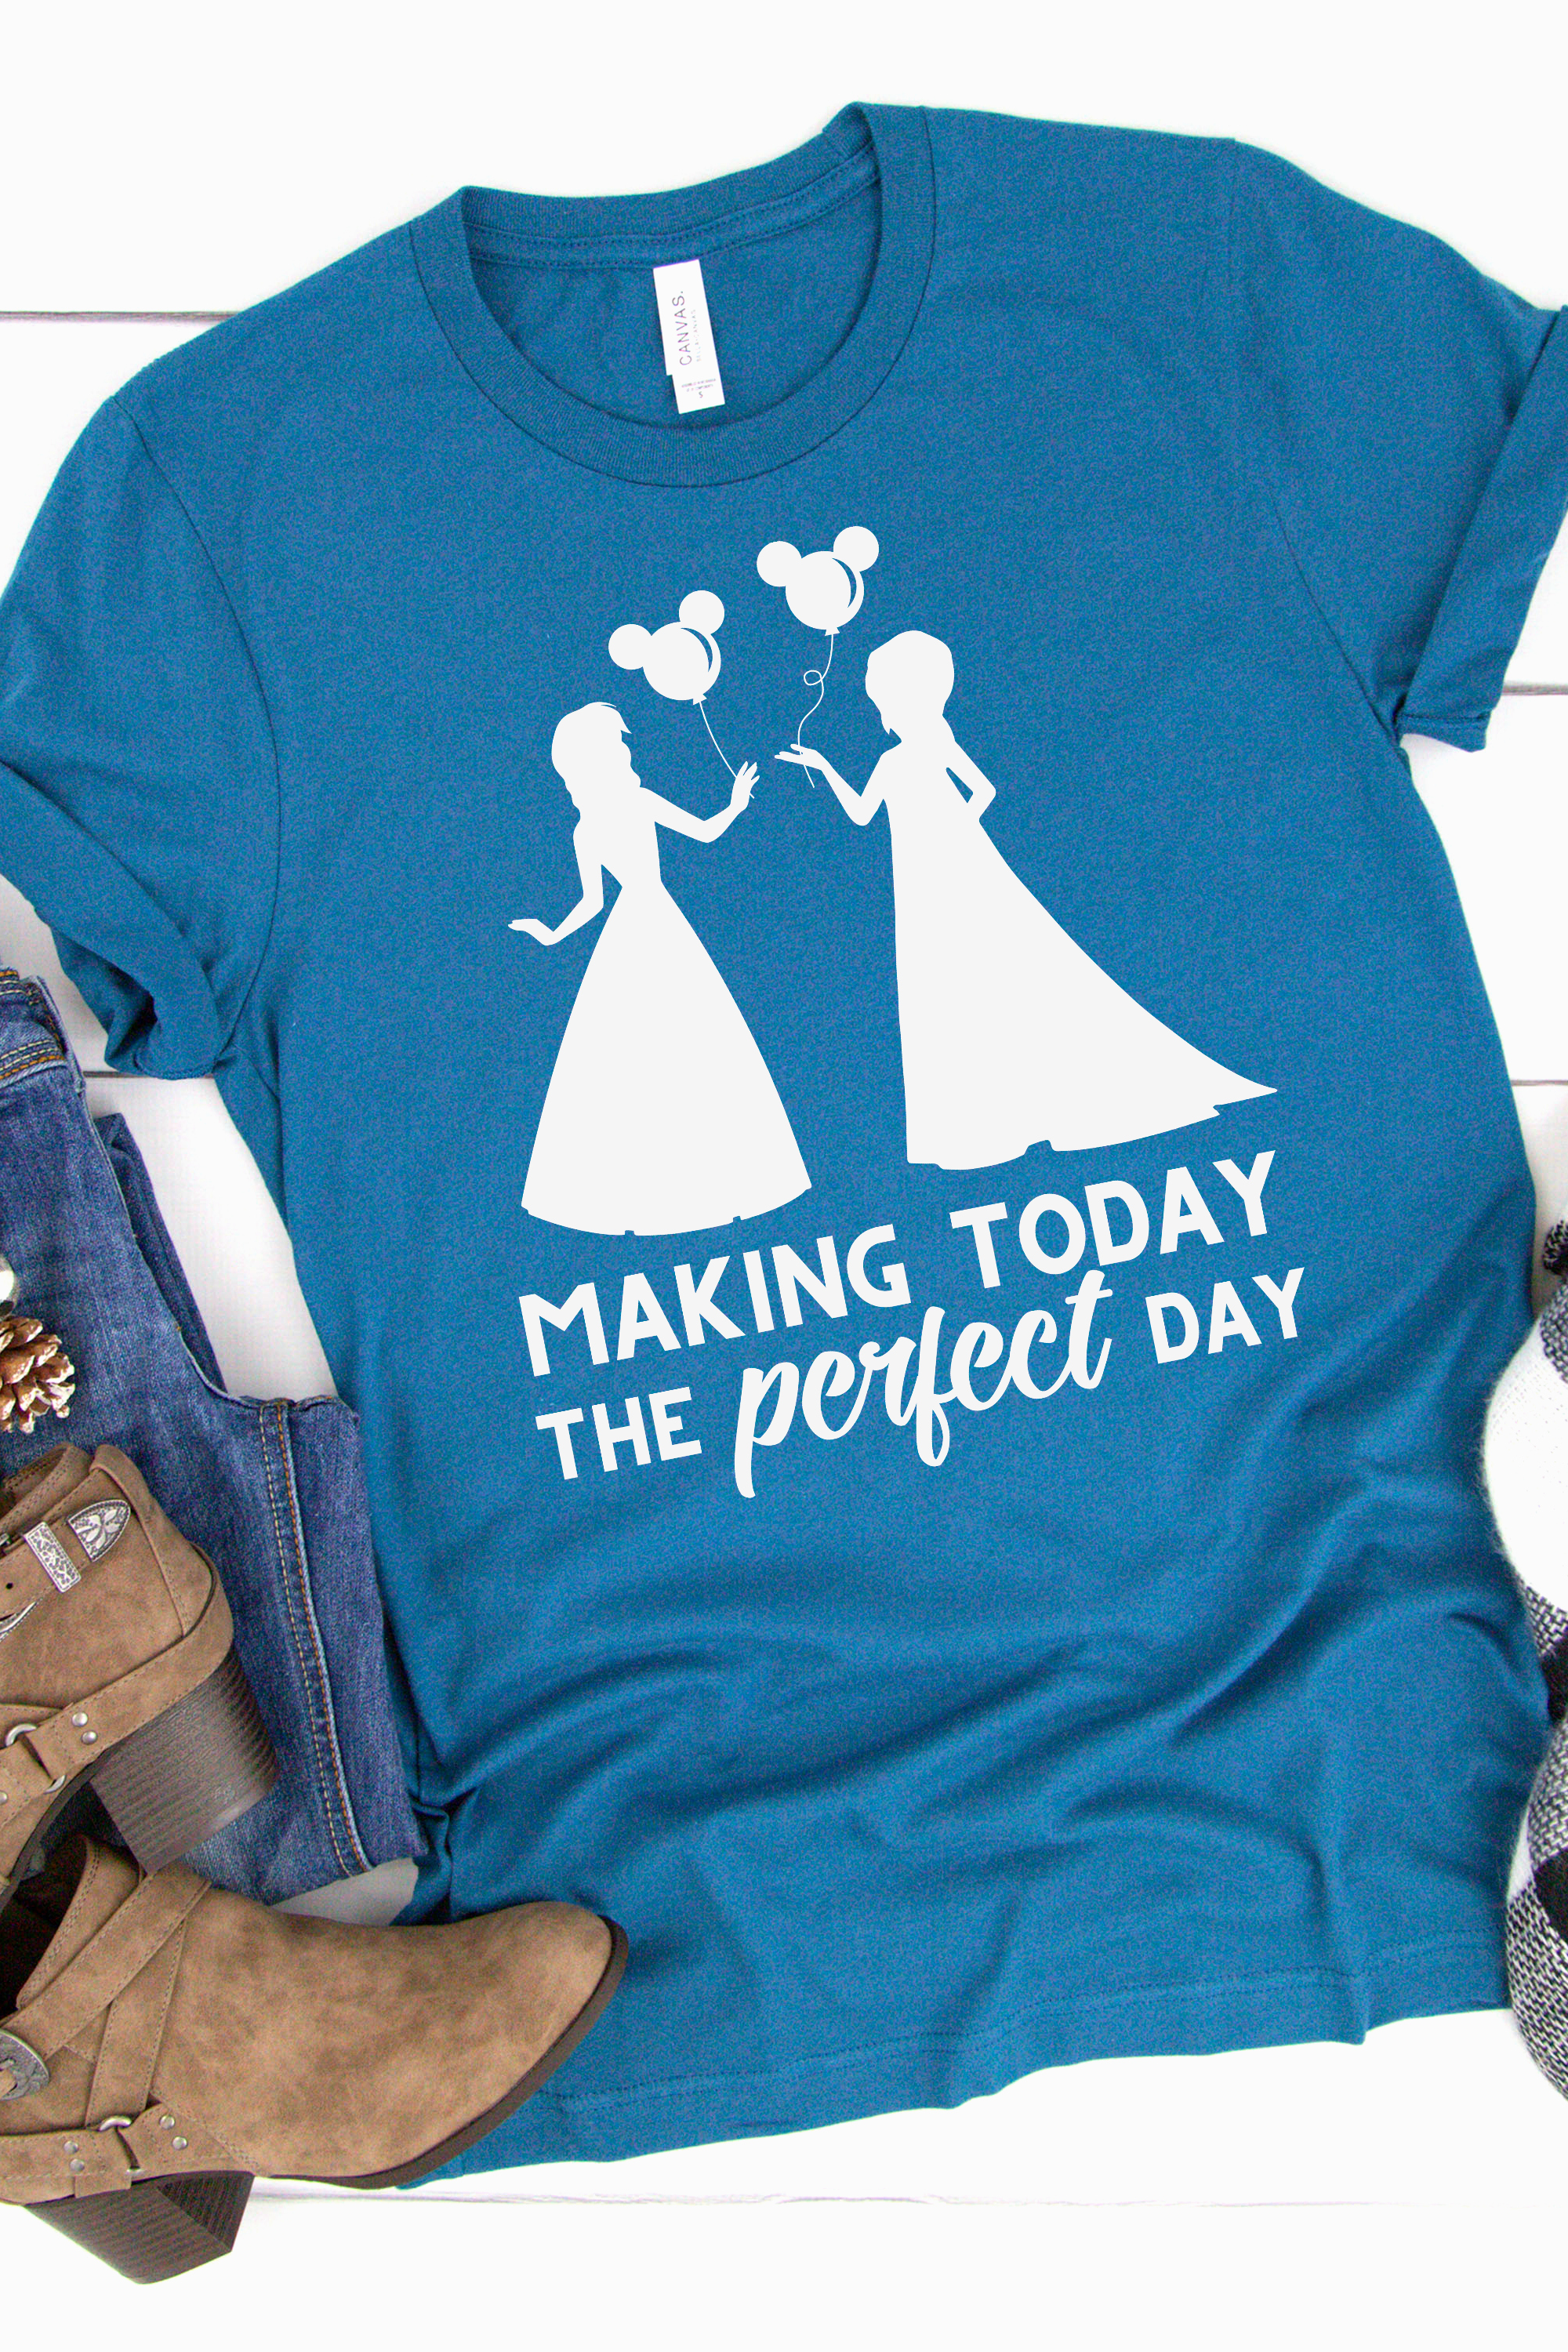 Blue shirt with a Frozen svg file ironed on using heat transfer vinyl in white that say making today the perfect day and features an anna and elsa silhouette holding mickey balloons